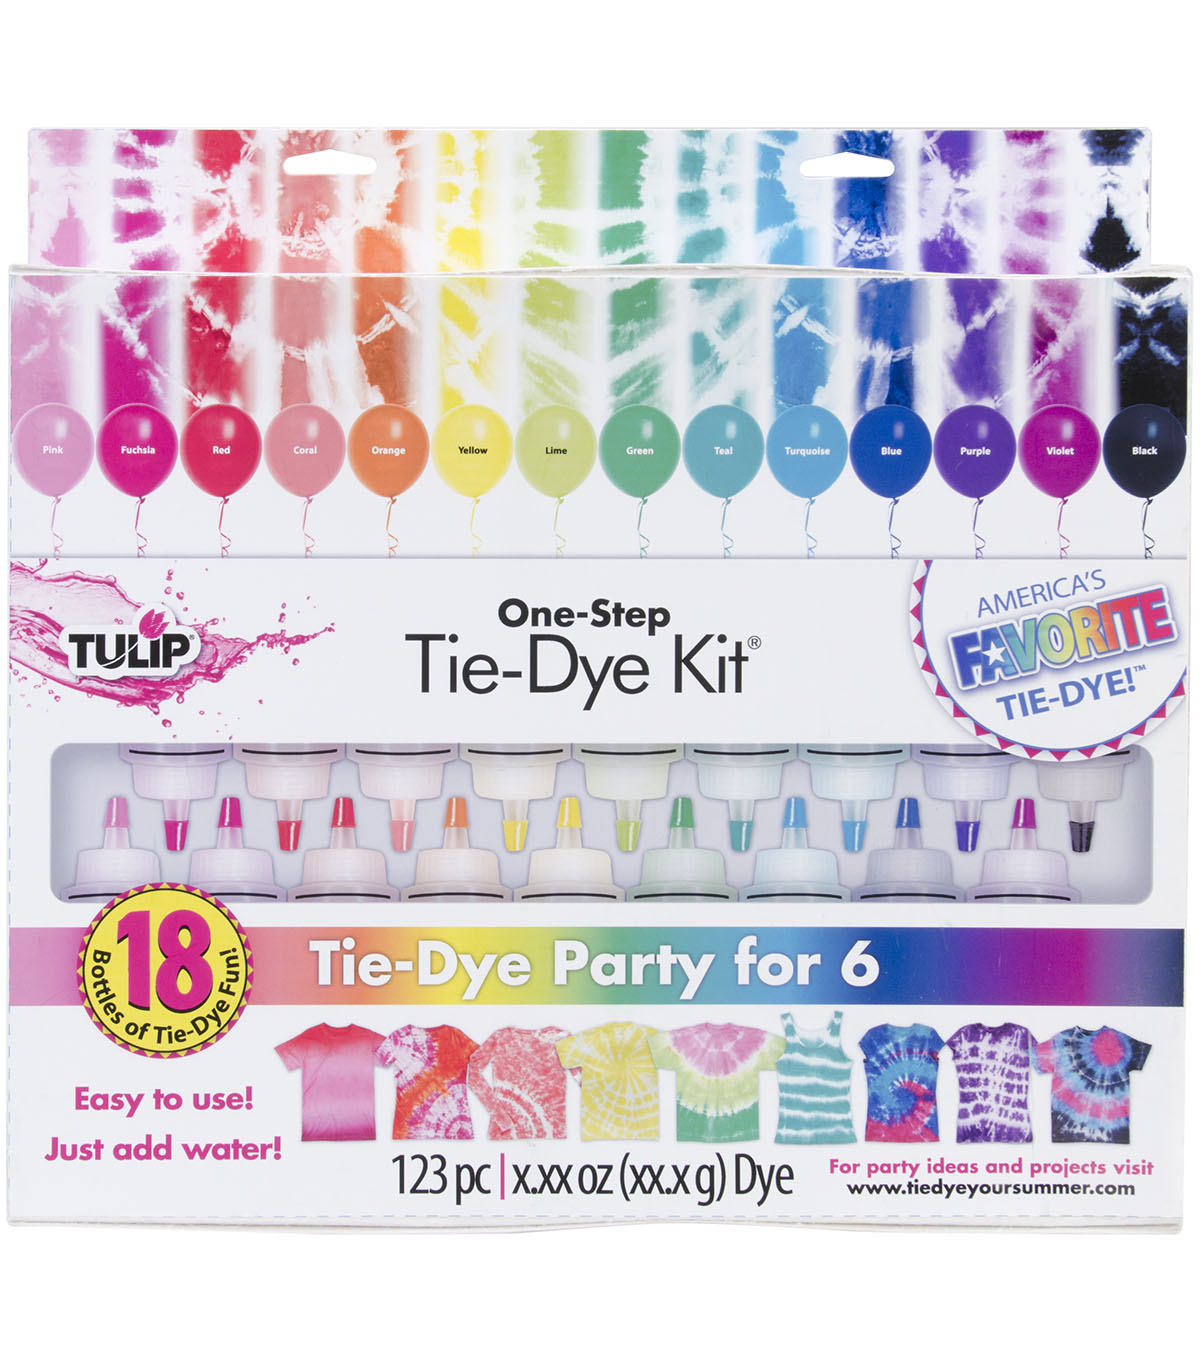 Tulip® One-Step Tie-Dye Kit Party for 6